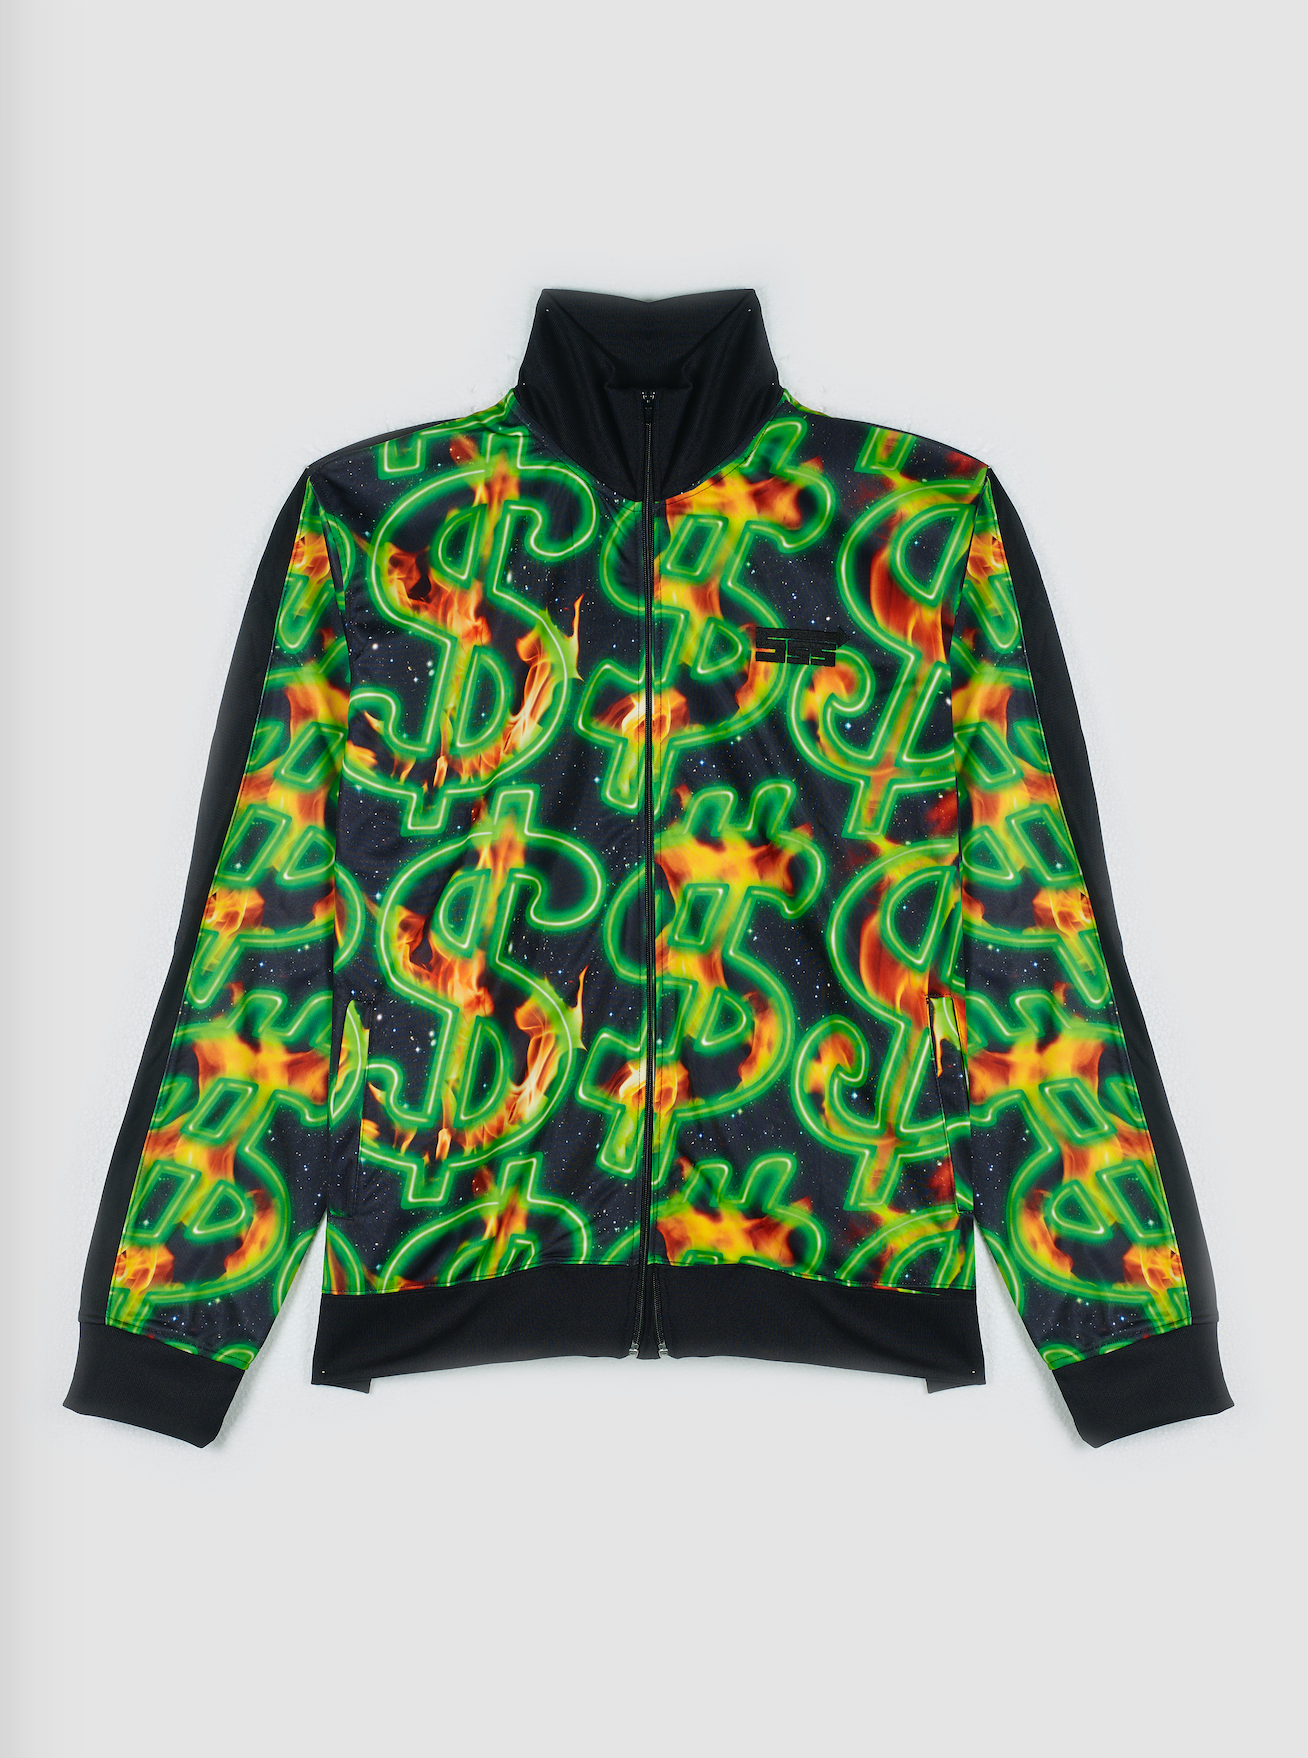 SSS World Corp Multiprint Track Top